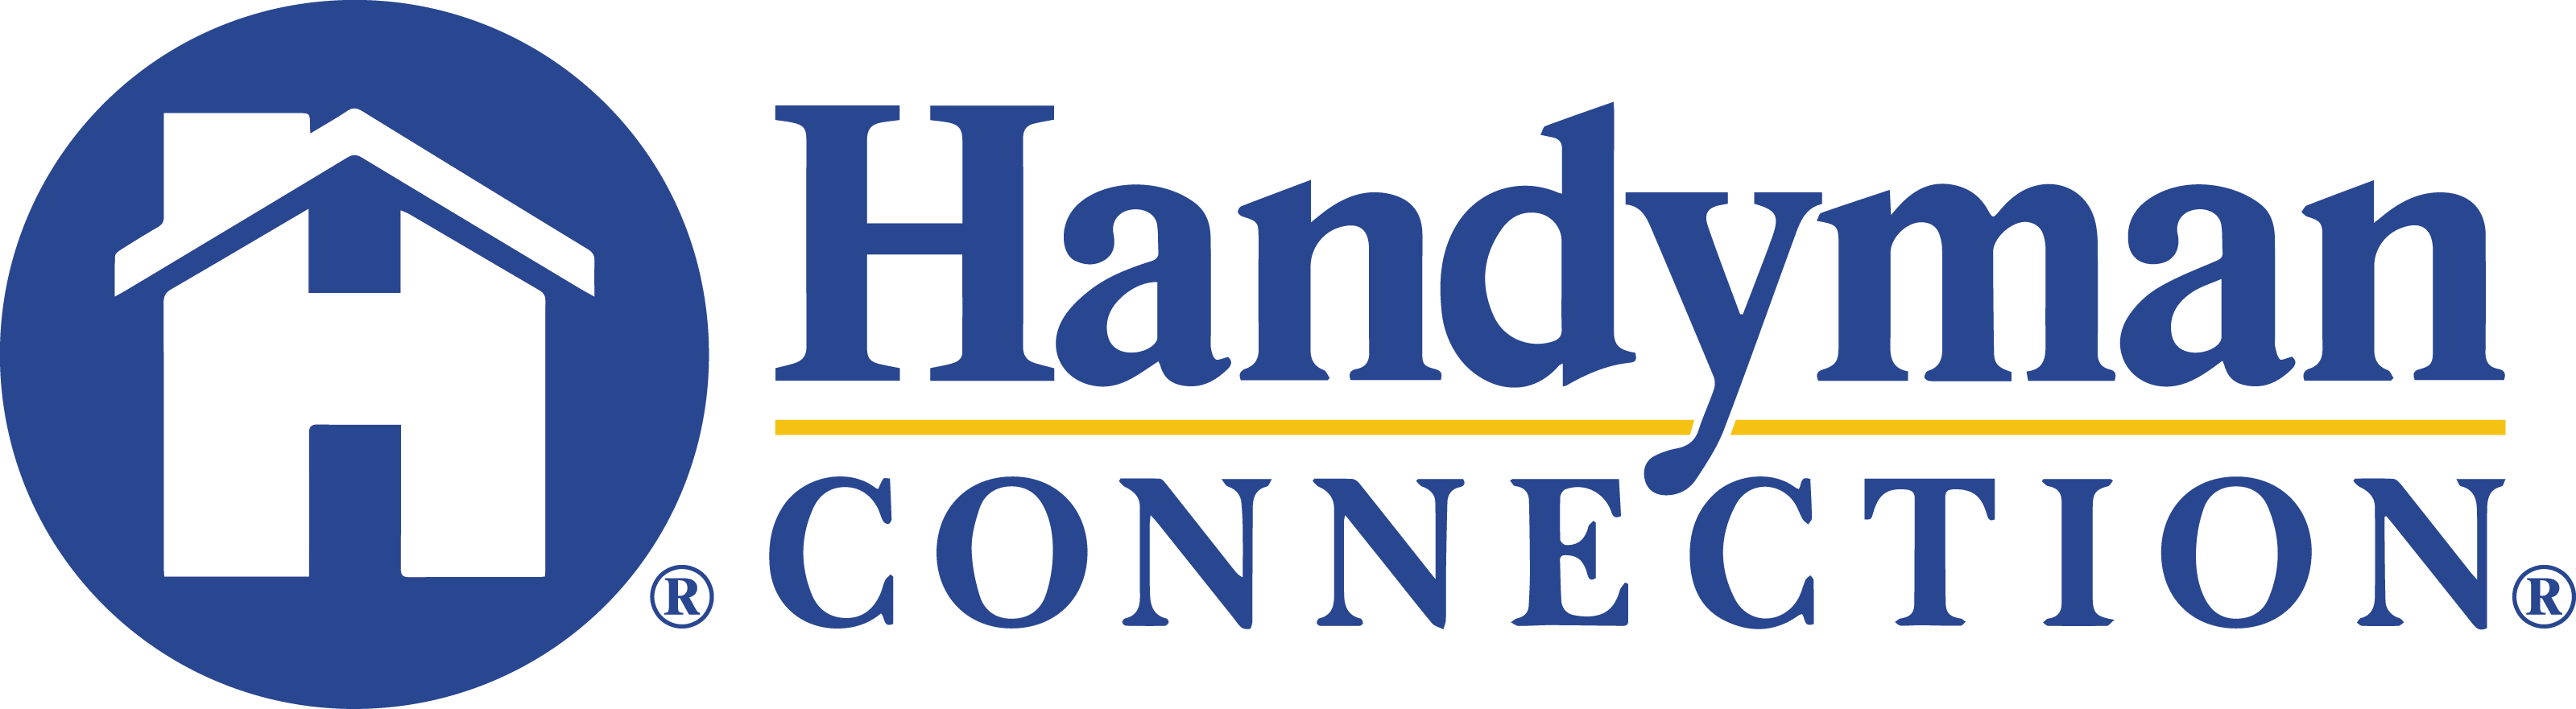 Handyman Connection of Jeffersonville, IN / East Louisville, KY